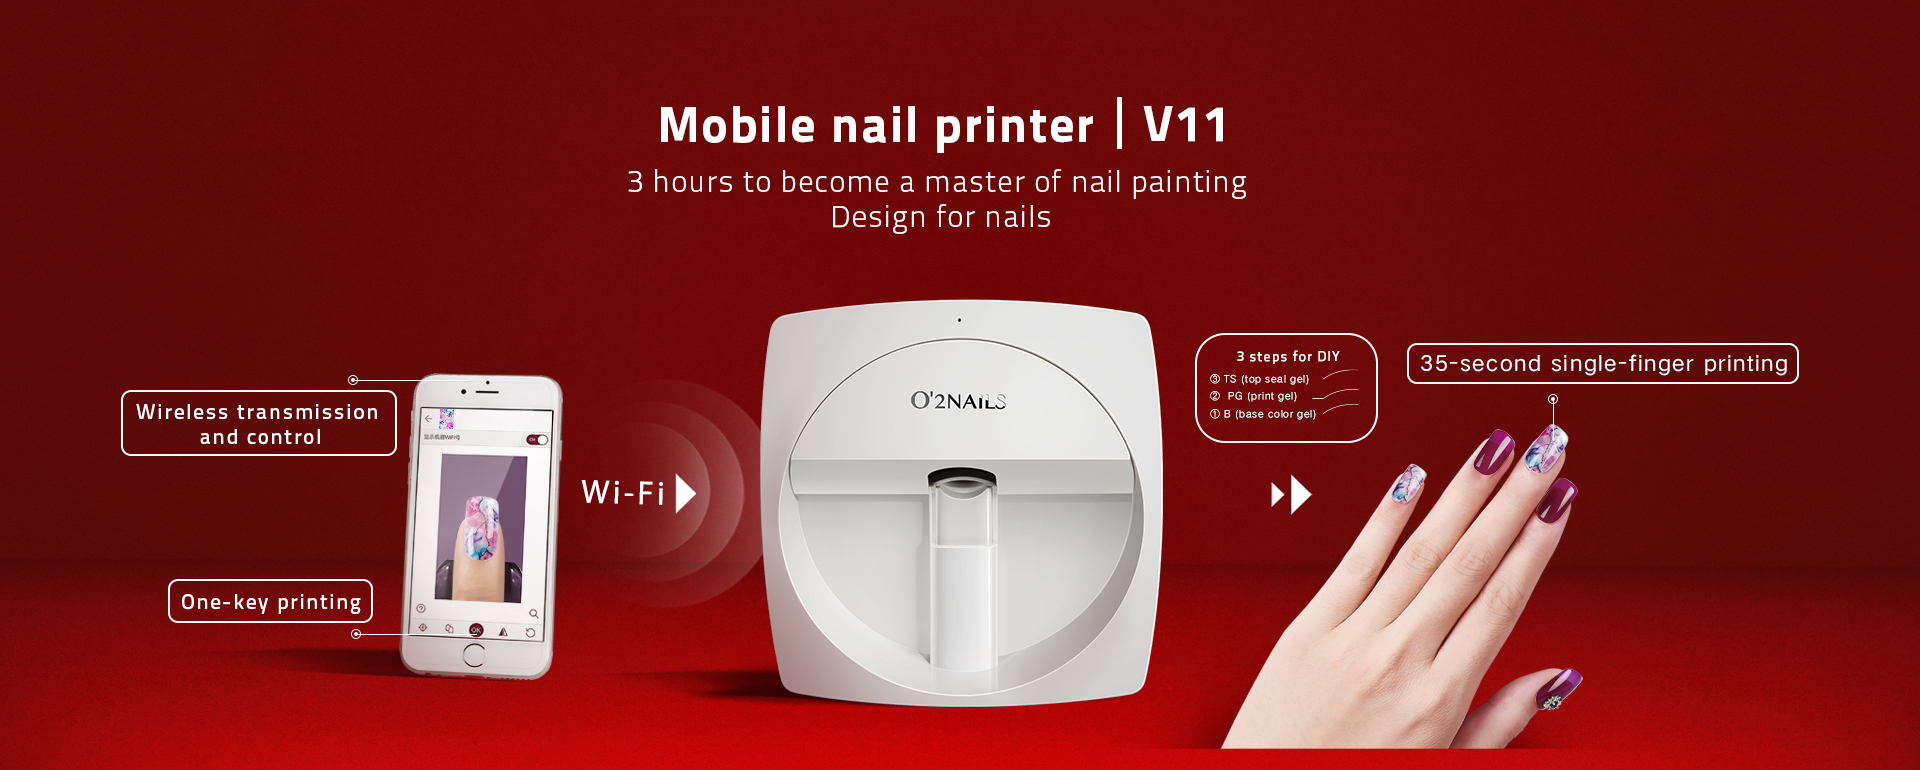 O2Nails Mobile Nail Printer, Digital Nail Printer, Nail Art Printer ...